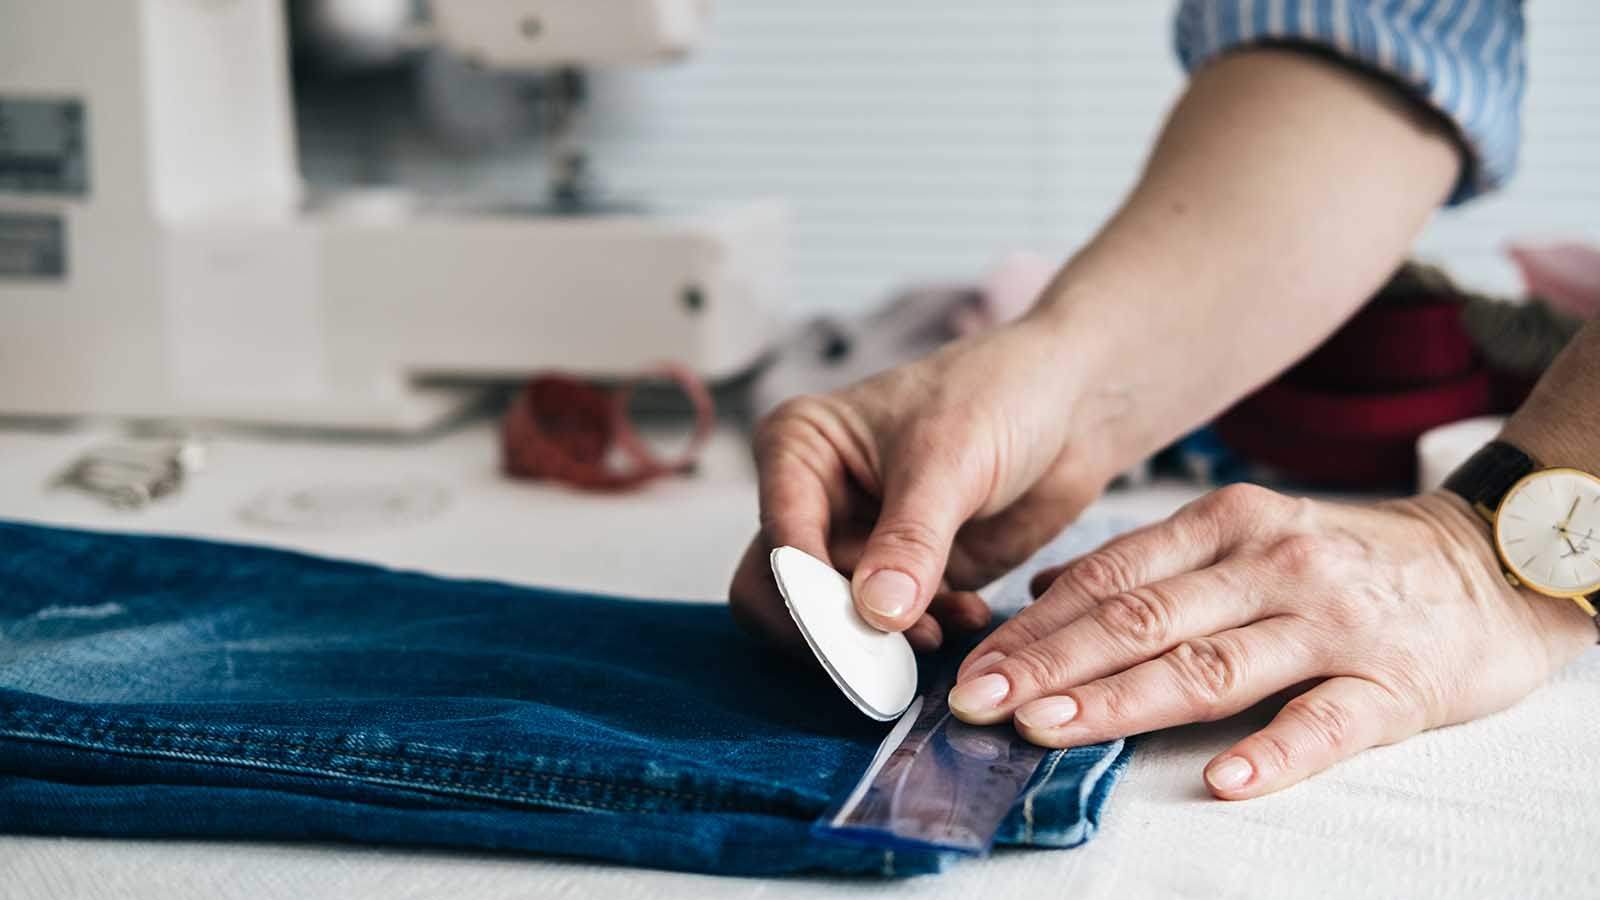 Tailor hemming a pair of blue jeans